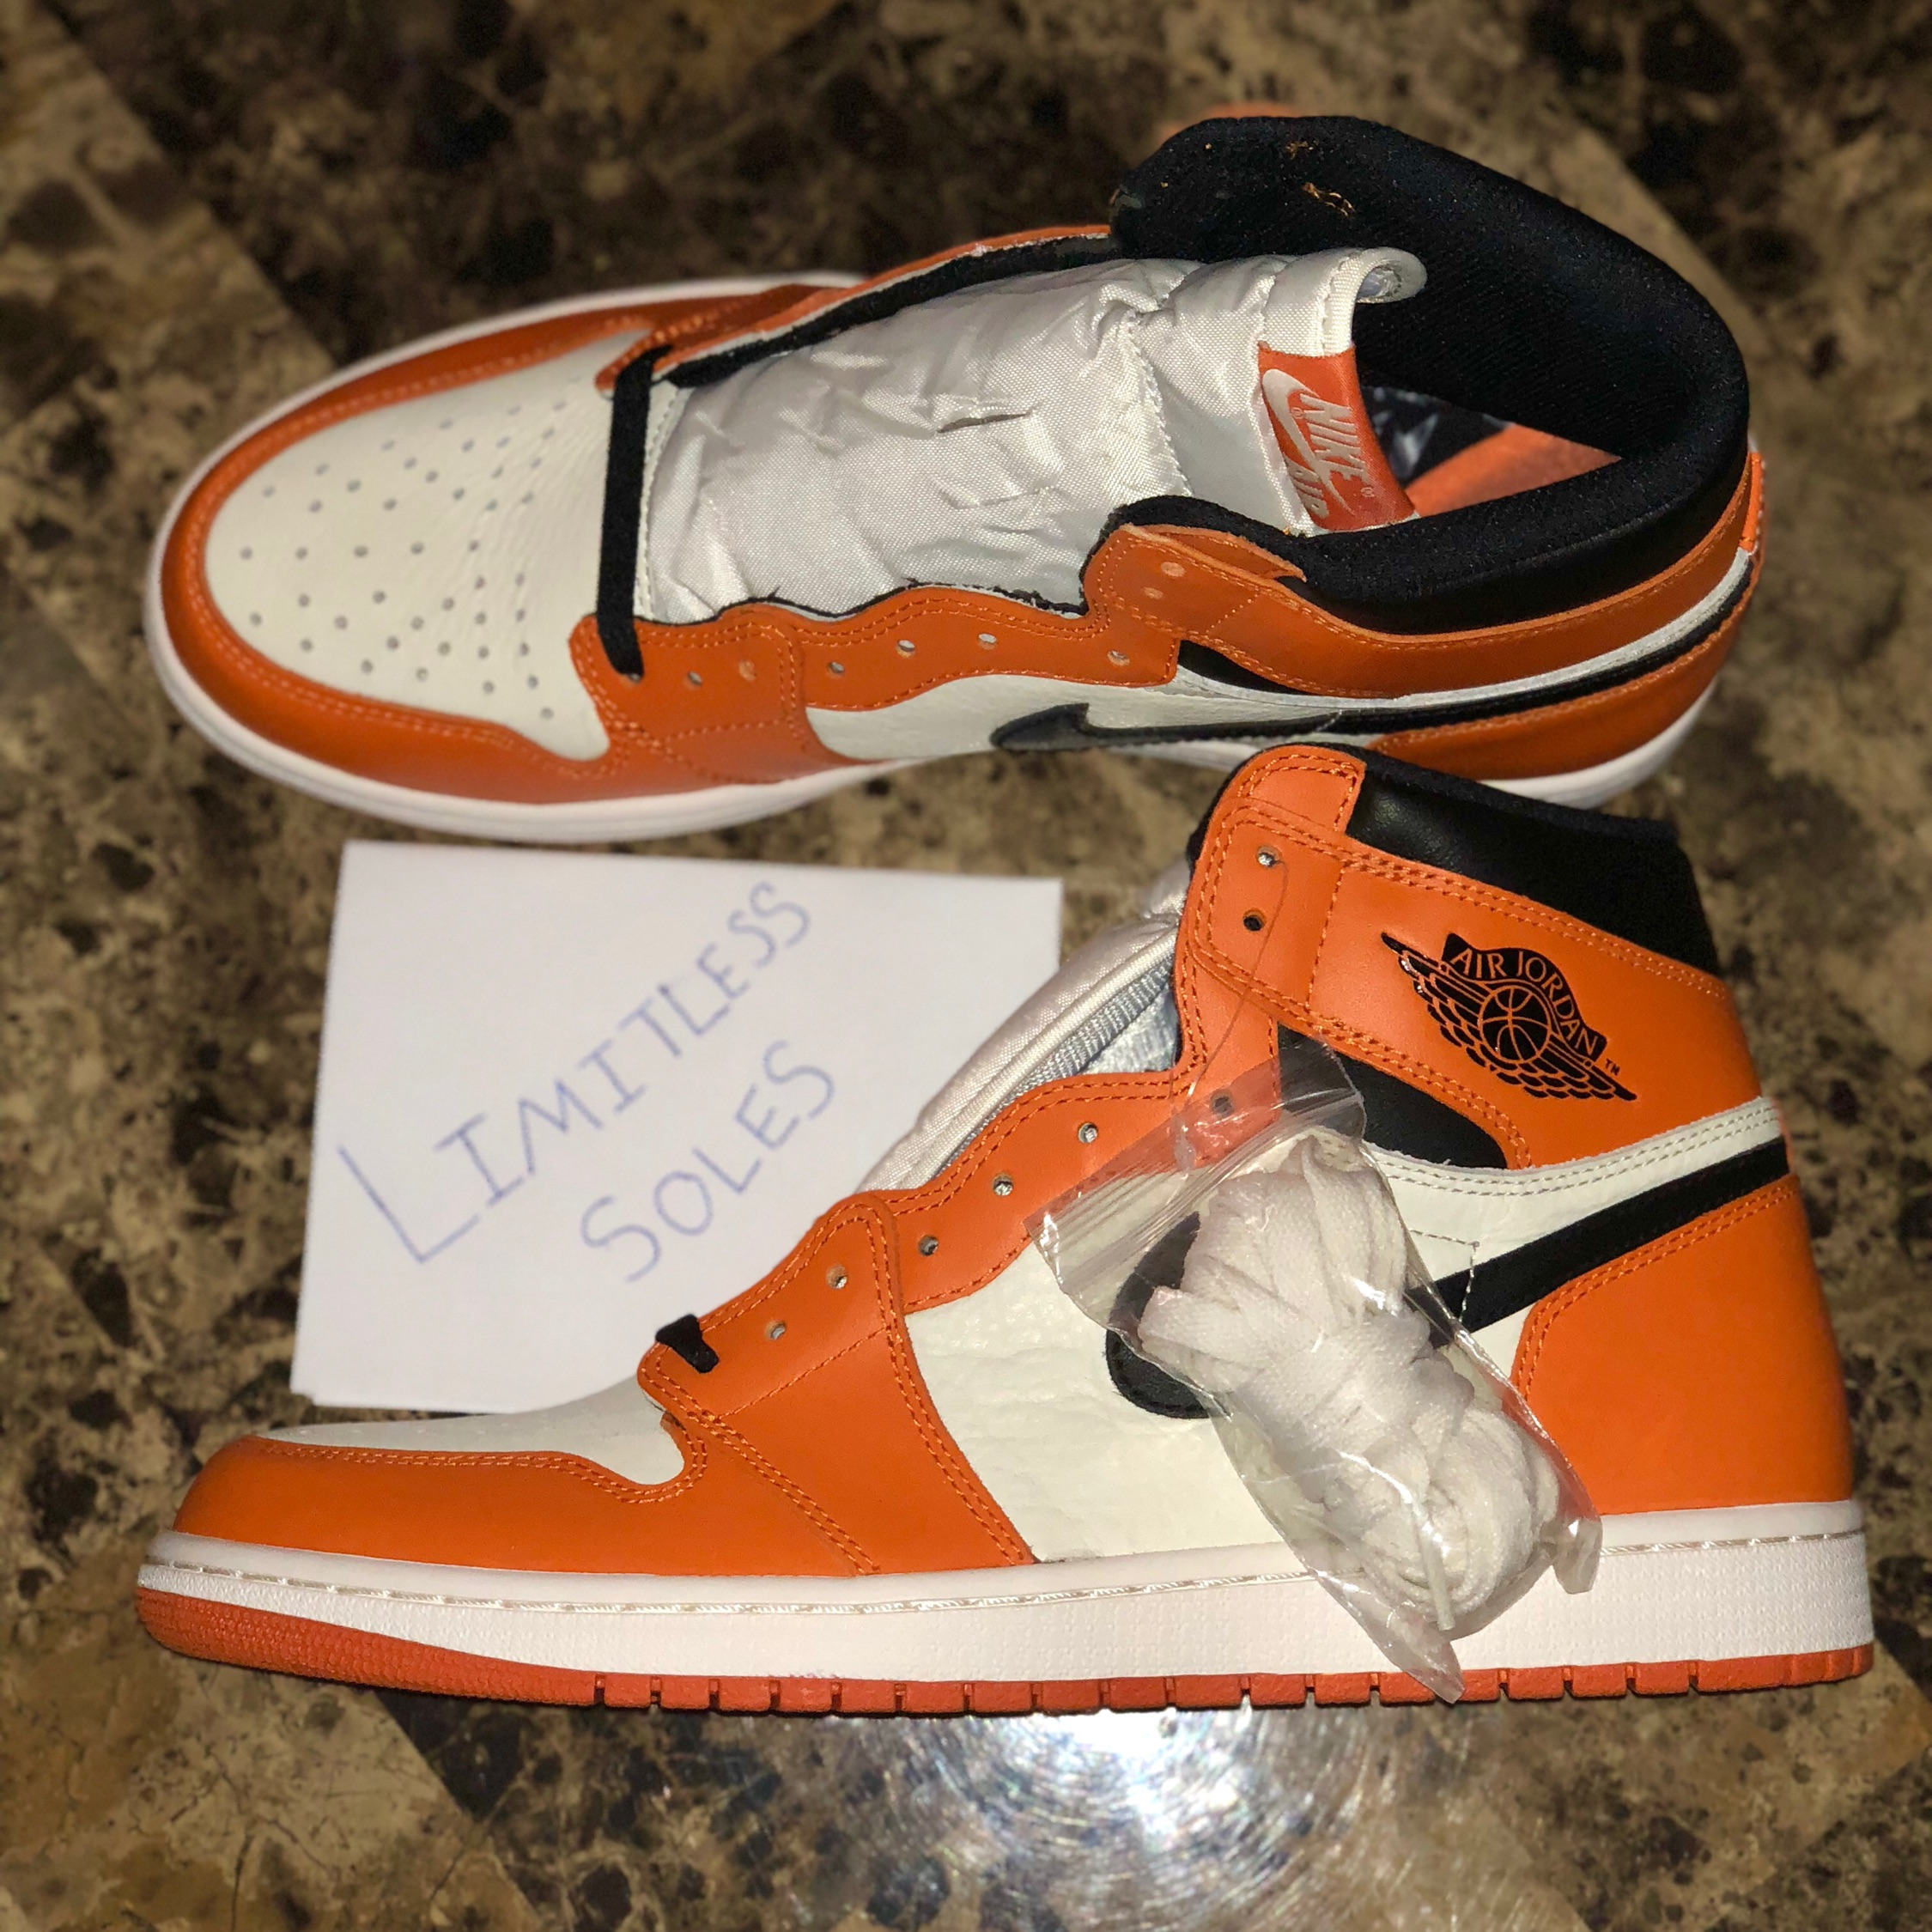 official photos 98fa3 cac0c Jordan 1 Reverse Shattered Backboard